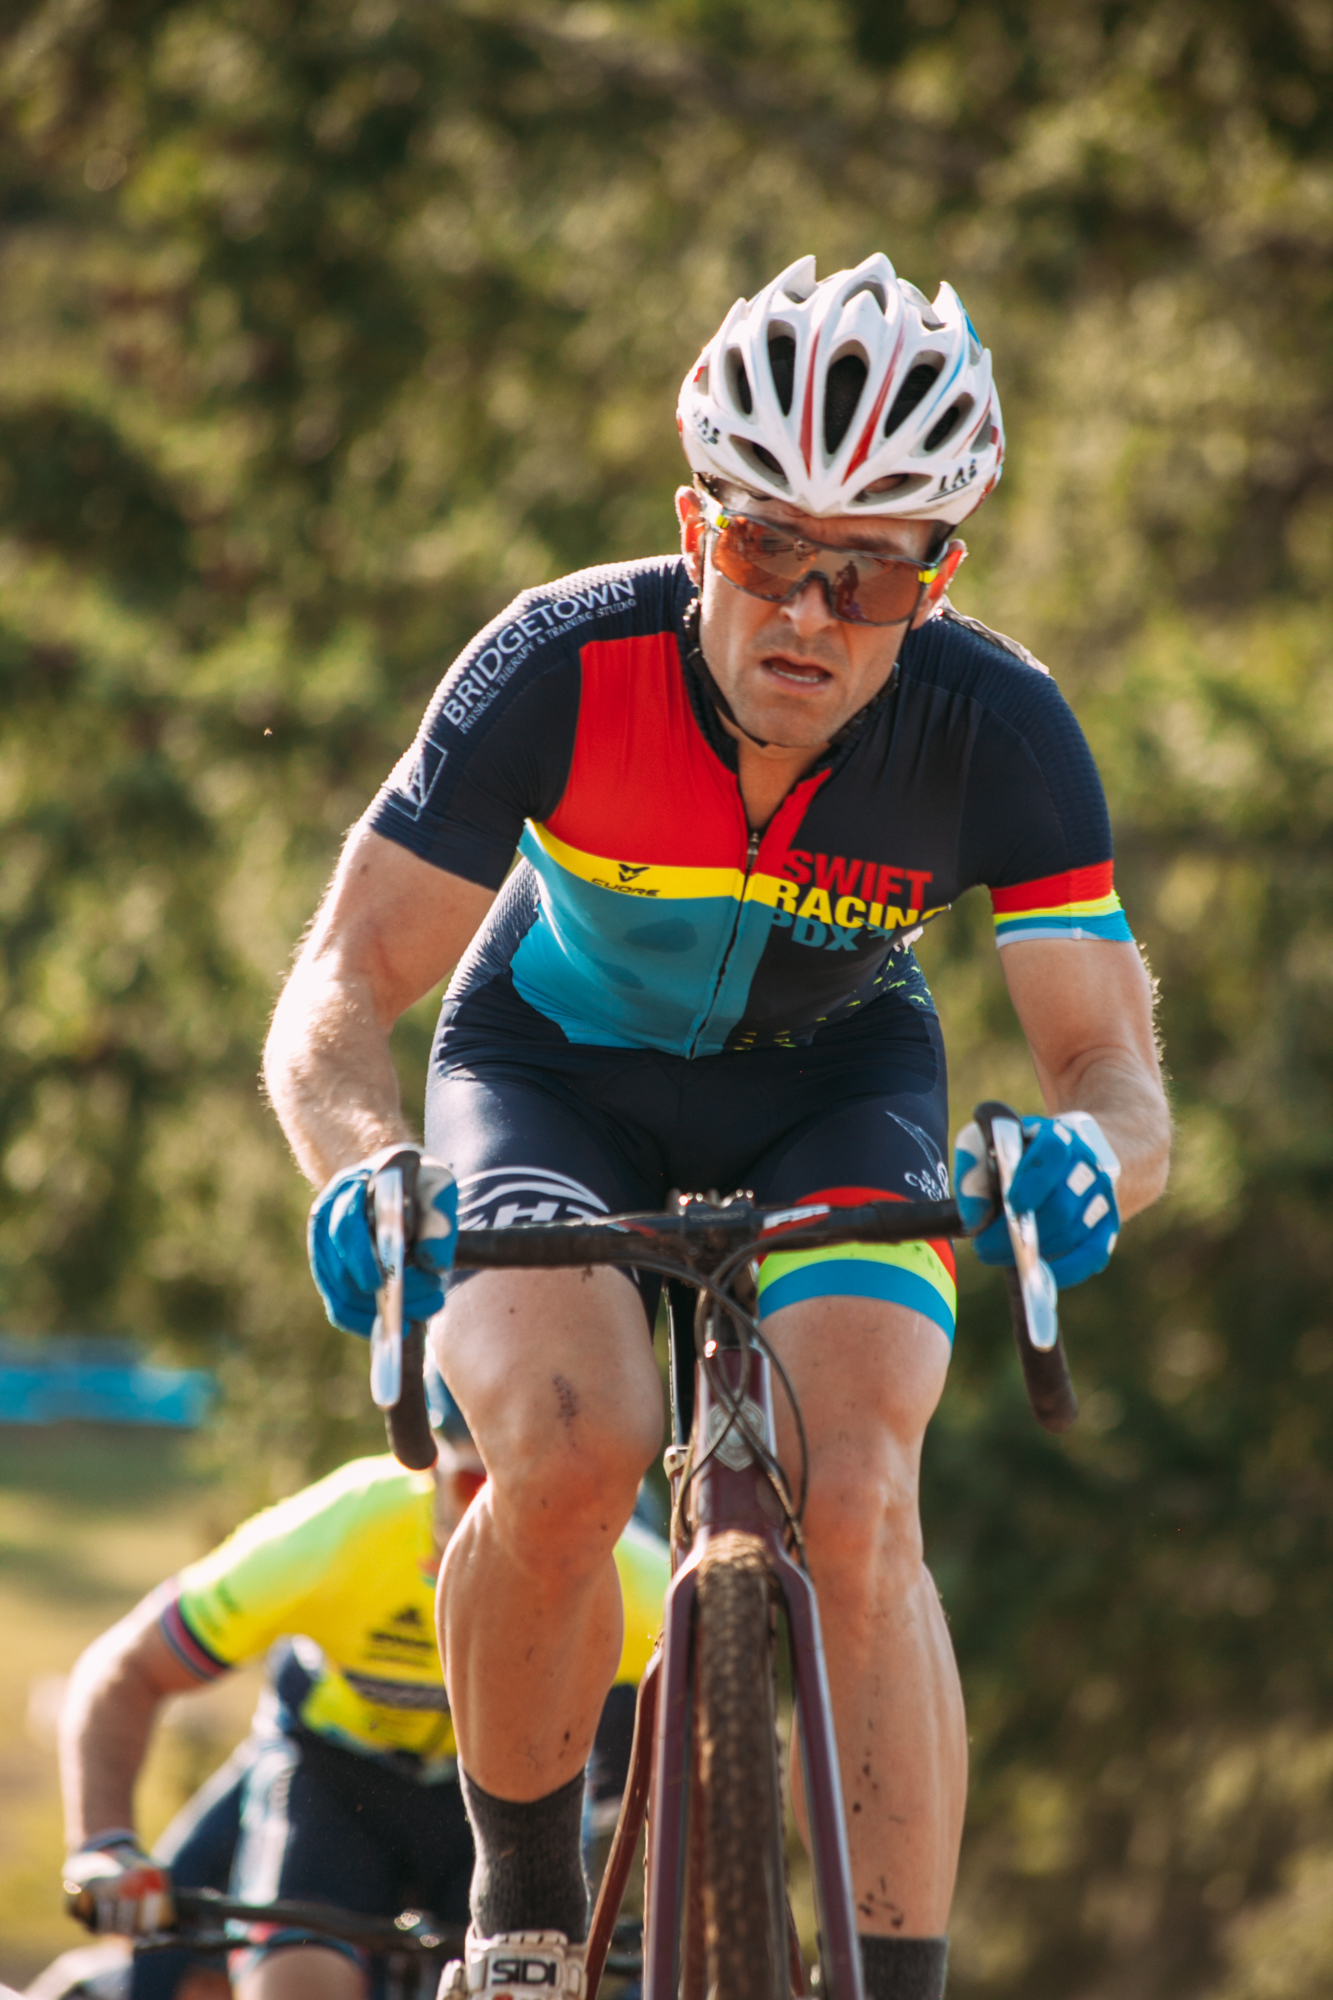 Cyclocross18_CCCX_RainierHS-210-mettlecycling.jpg